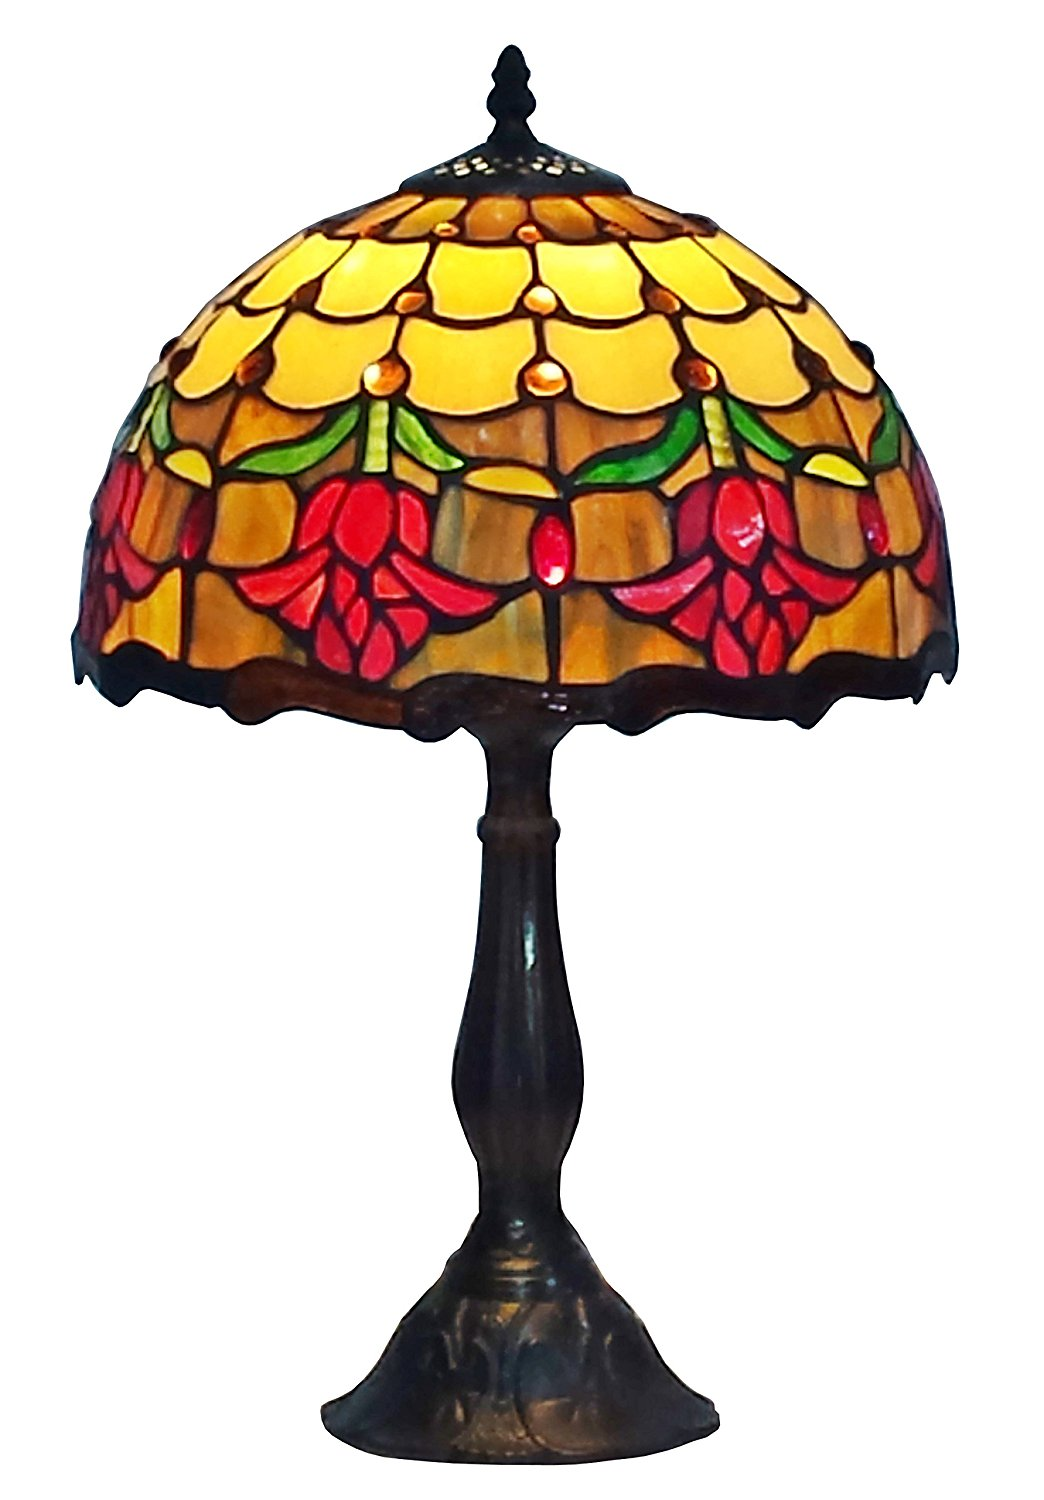 Amora Lighting AM1094TL12 Tiffany Style Stained Glass Table Lamp Tulip Flower Design